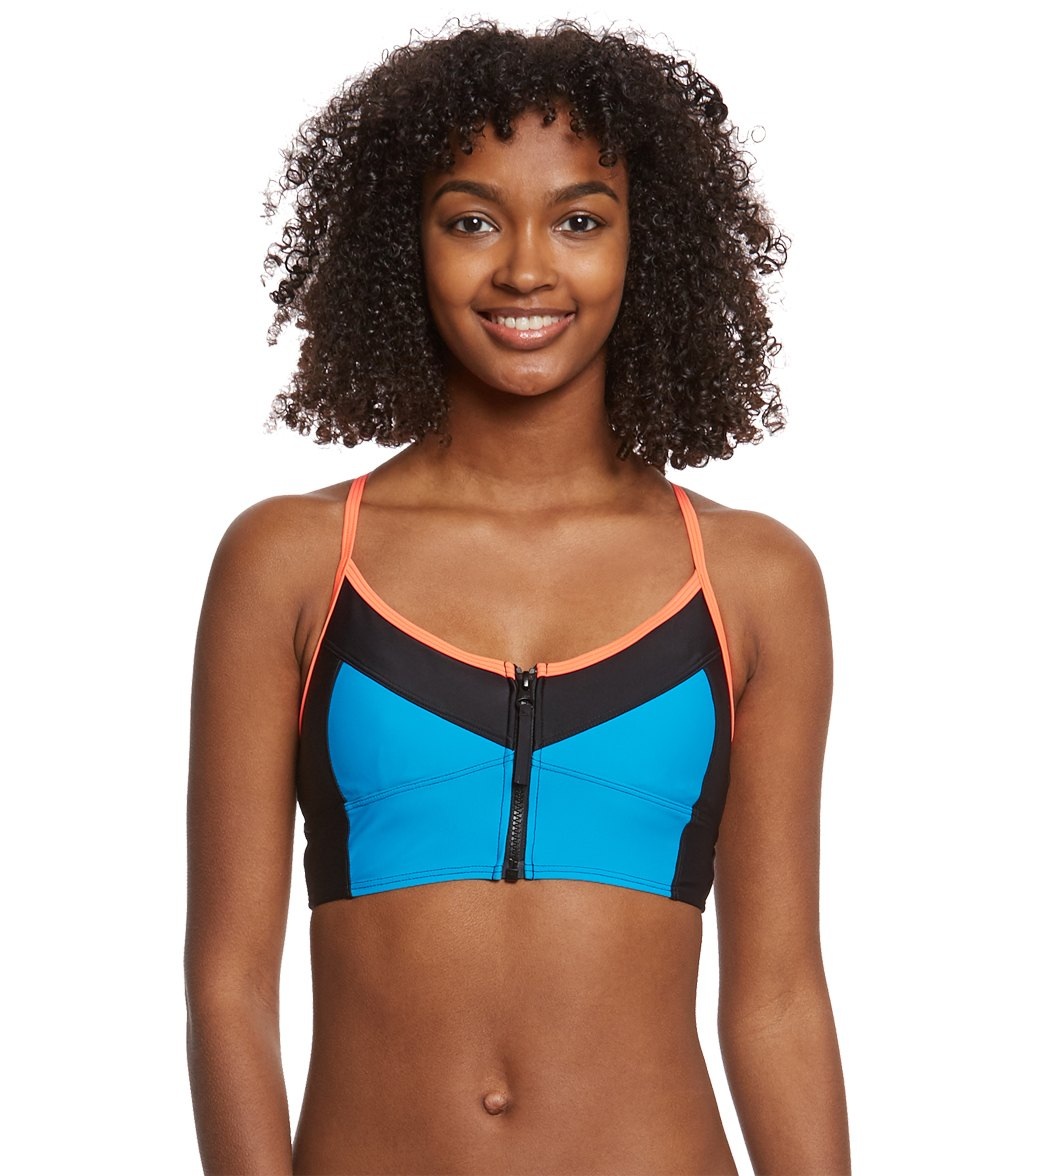 eba7a1895b8dc Speedo Women s Zip Front Midi Crop Bikini Top at SwimOutlet.com - Free  Shipping